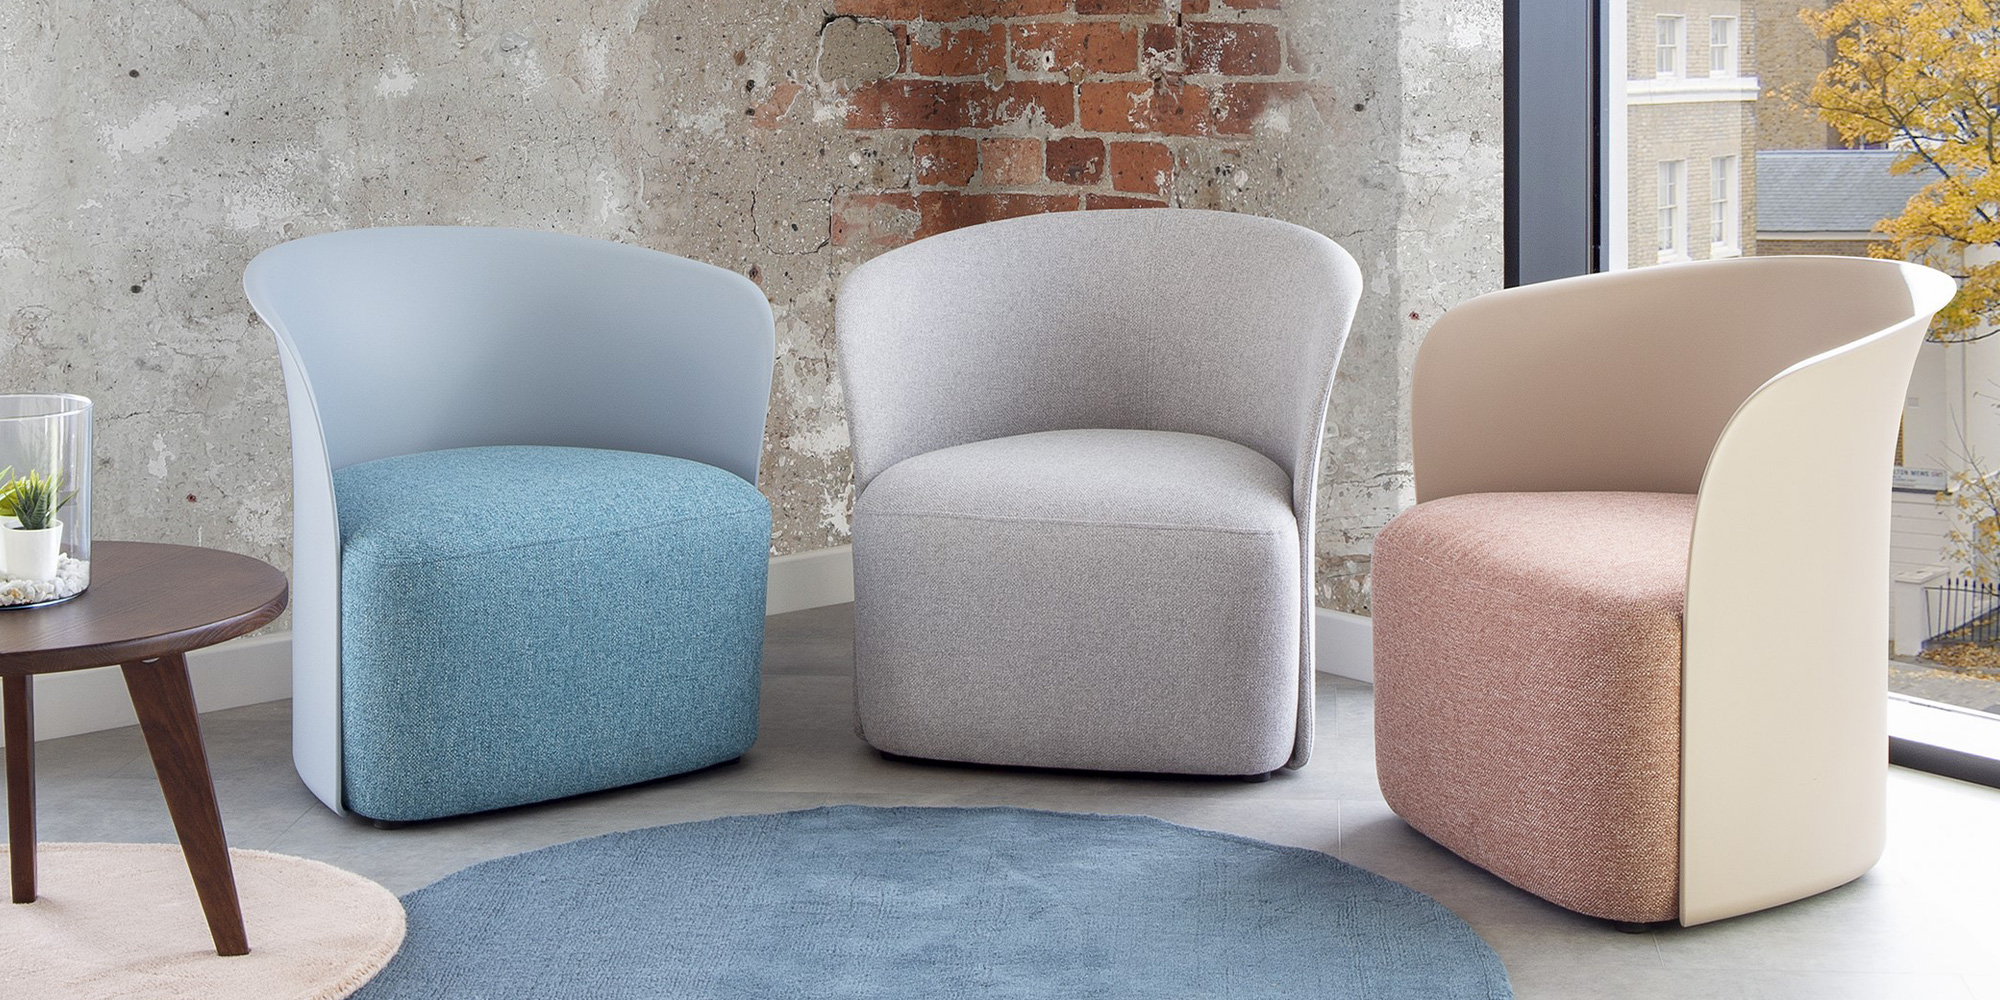 Teo Soft Seating Roomset